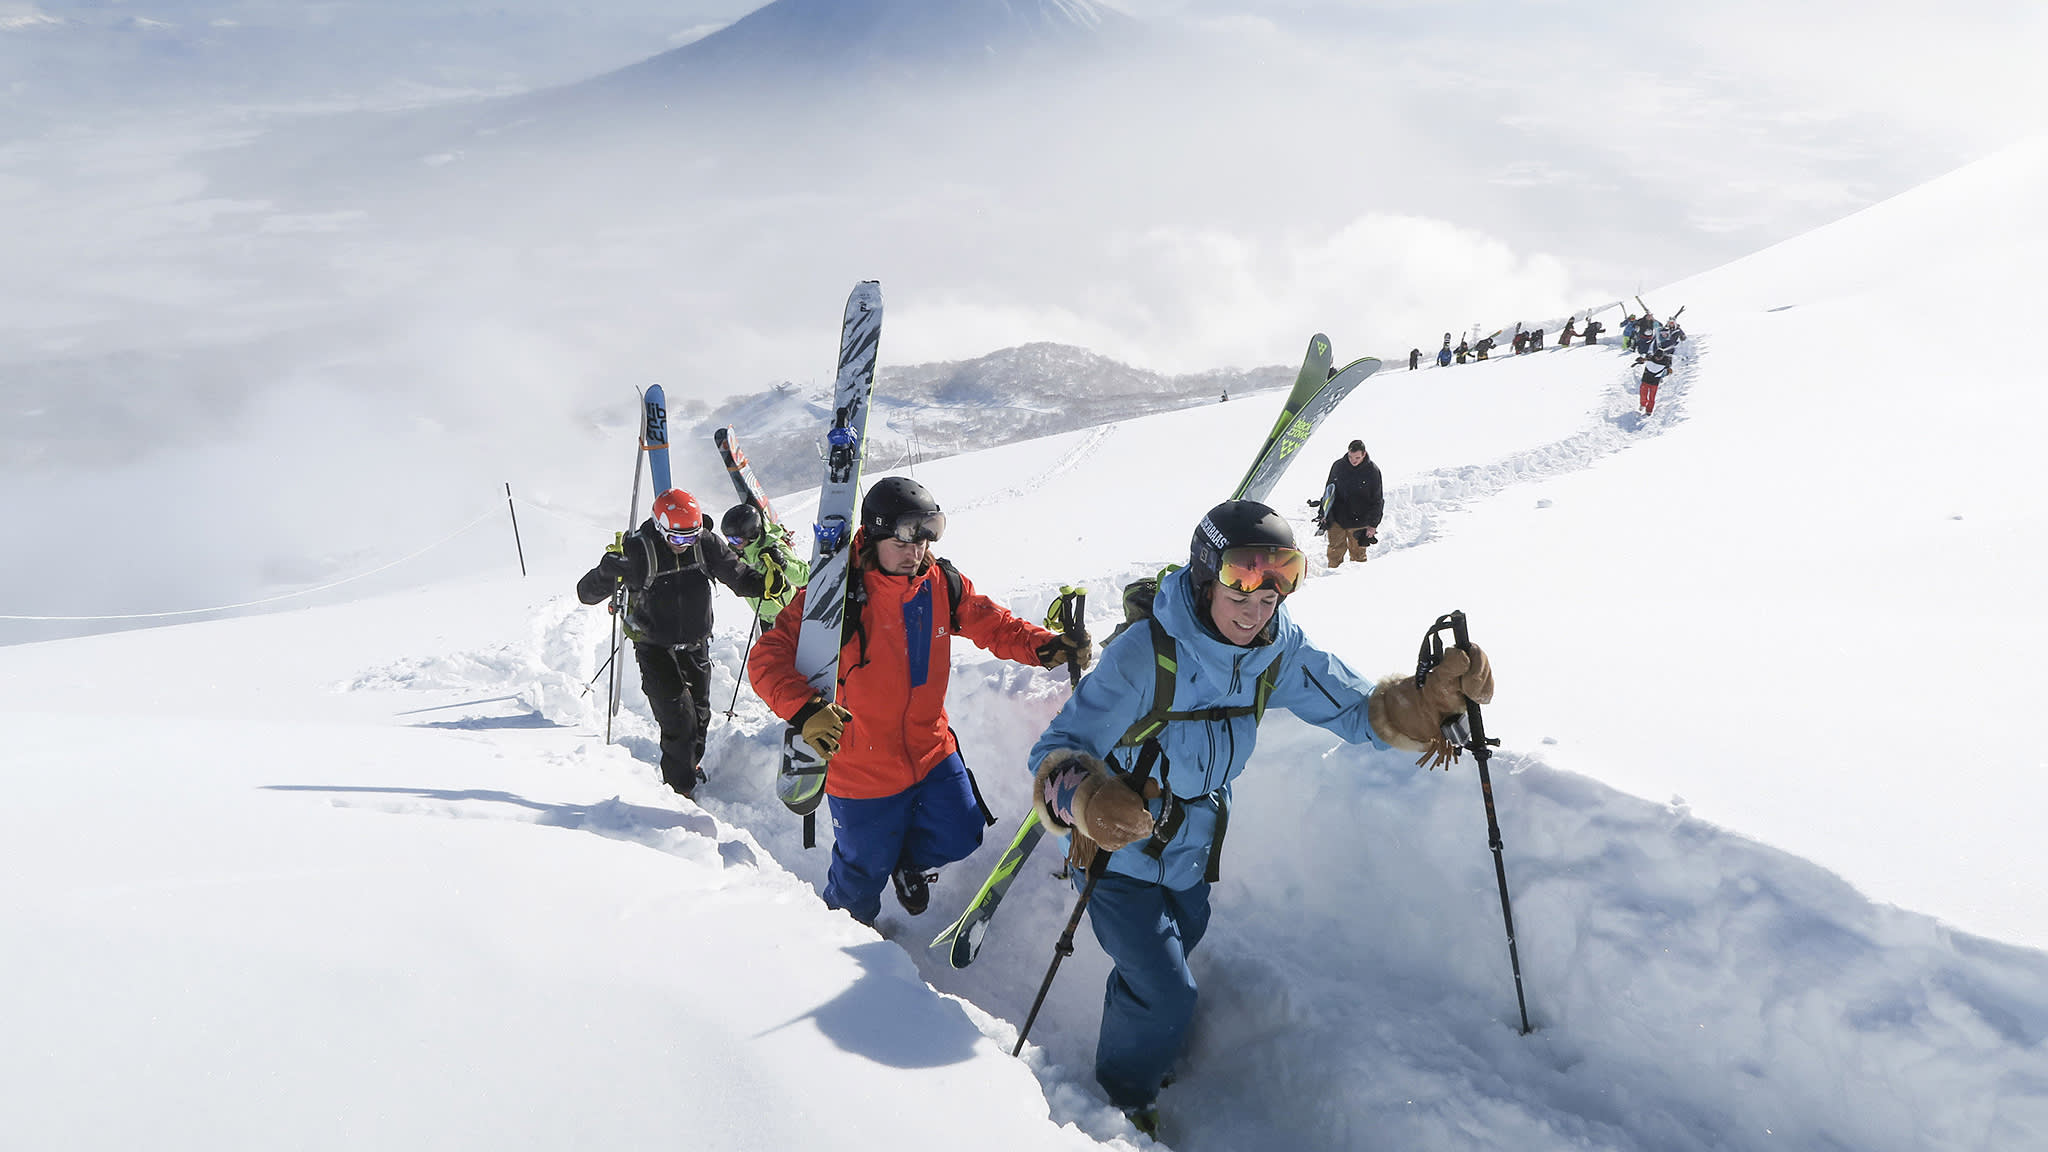 Asia's snowflake generation: China's skiers flock to Japan